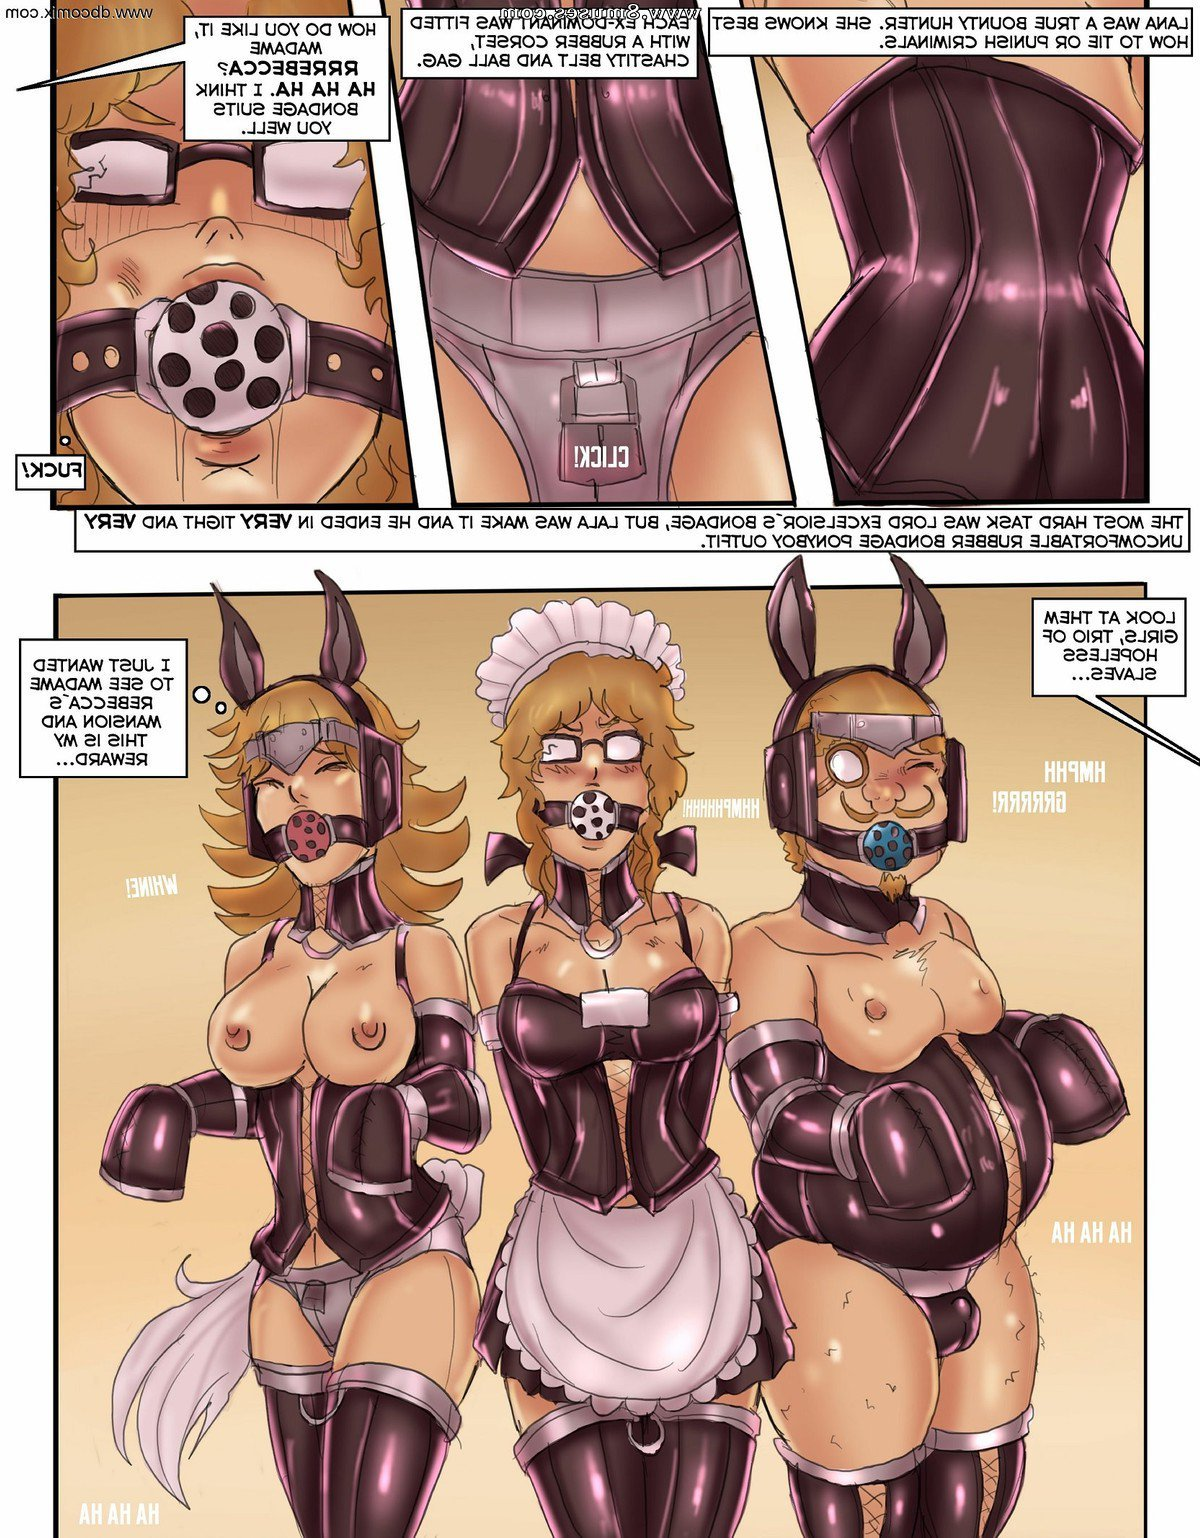 DBComix-Deviant-Bondage-Comics/Boundy-Hunter/Issue-9 Boundy_Hunter_-_Issue_9_15.jpg